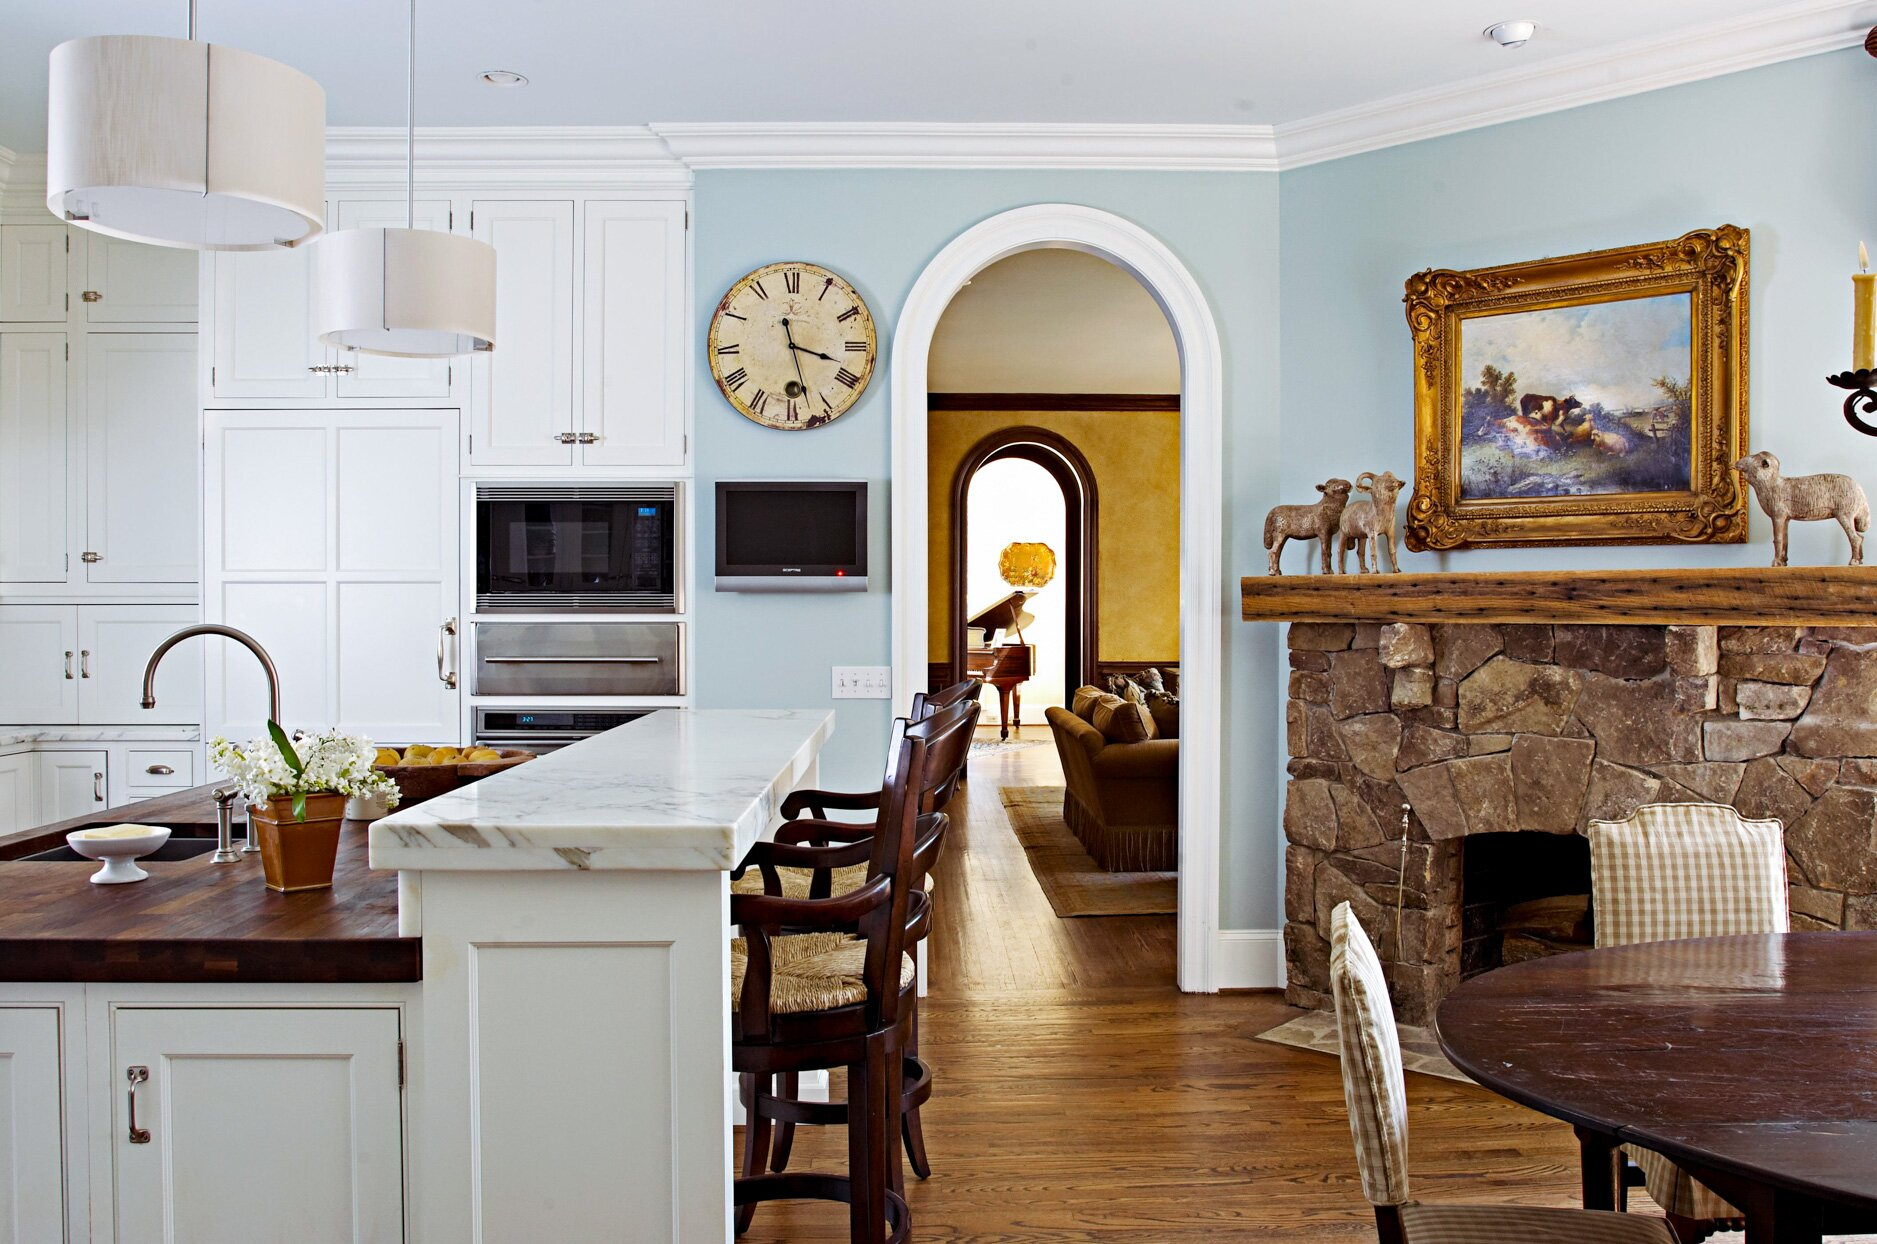 color-flow. 80+ Unusual Kitchen Design Ideas for Small Spaces in 2021